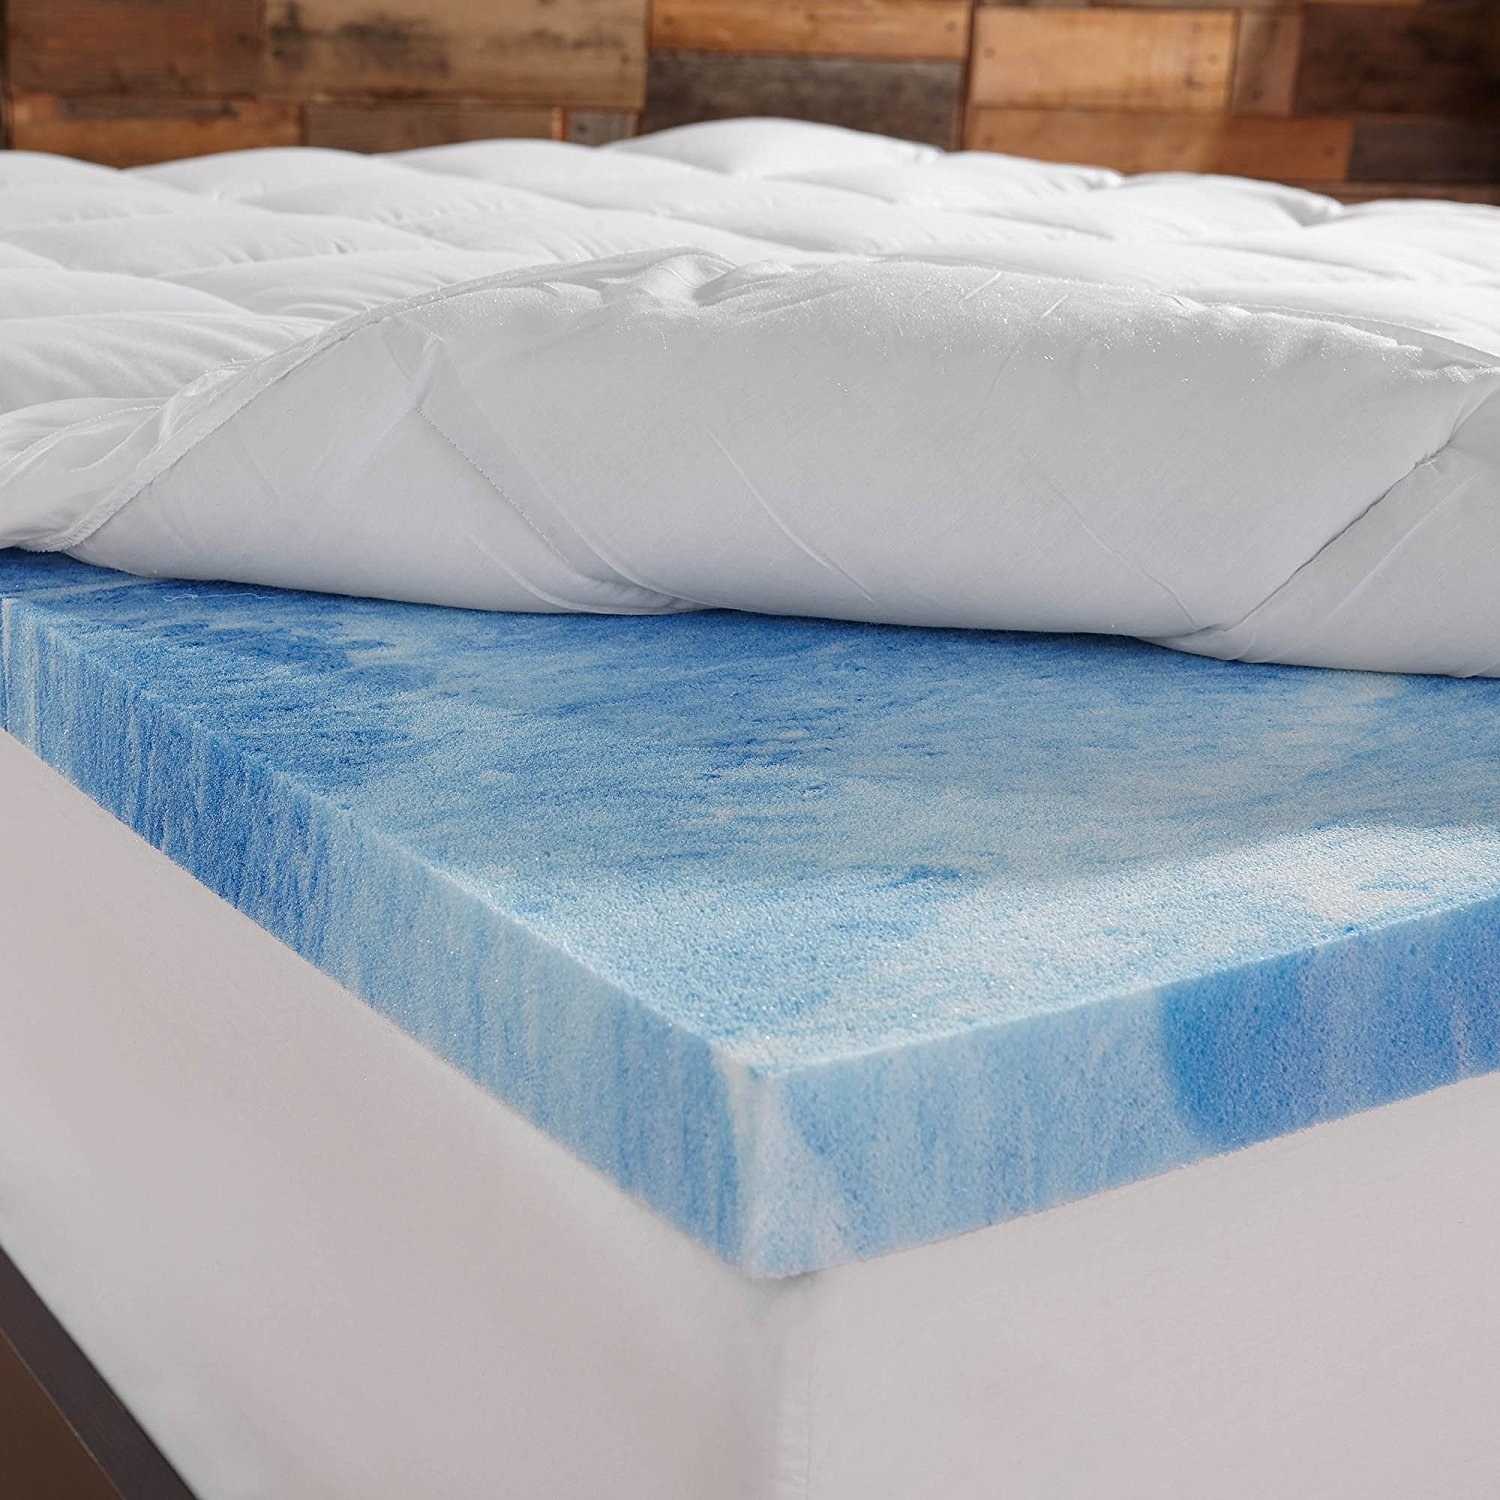 A bed with the topper; the fiber-fill layer pulled back to show the memory foam pad